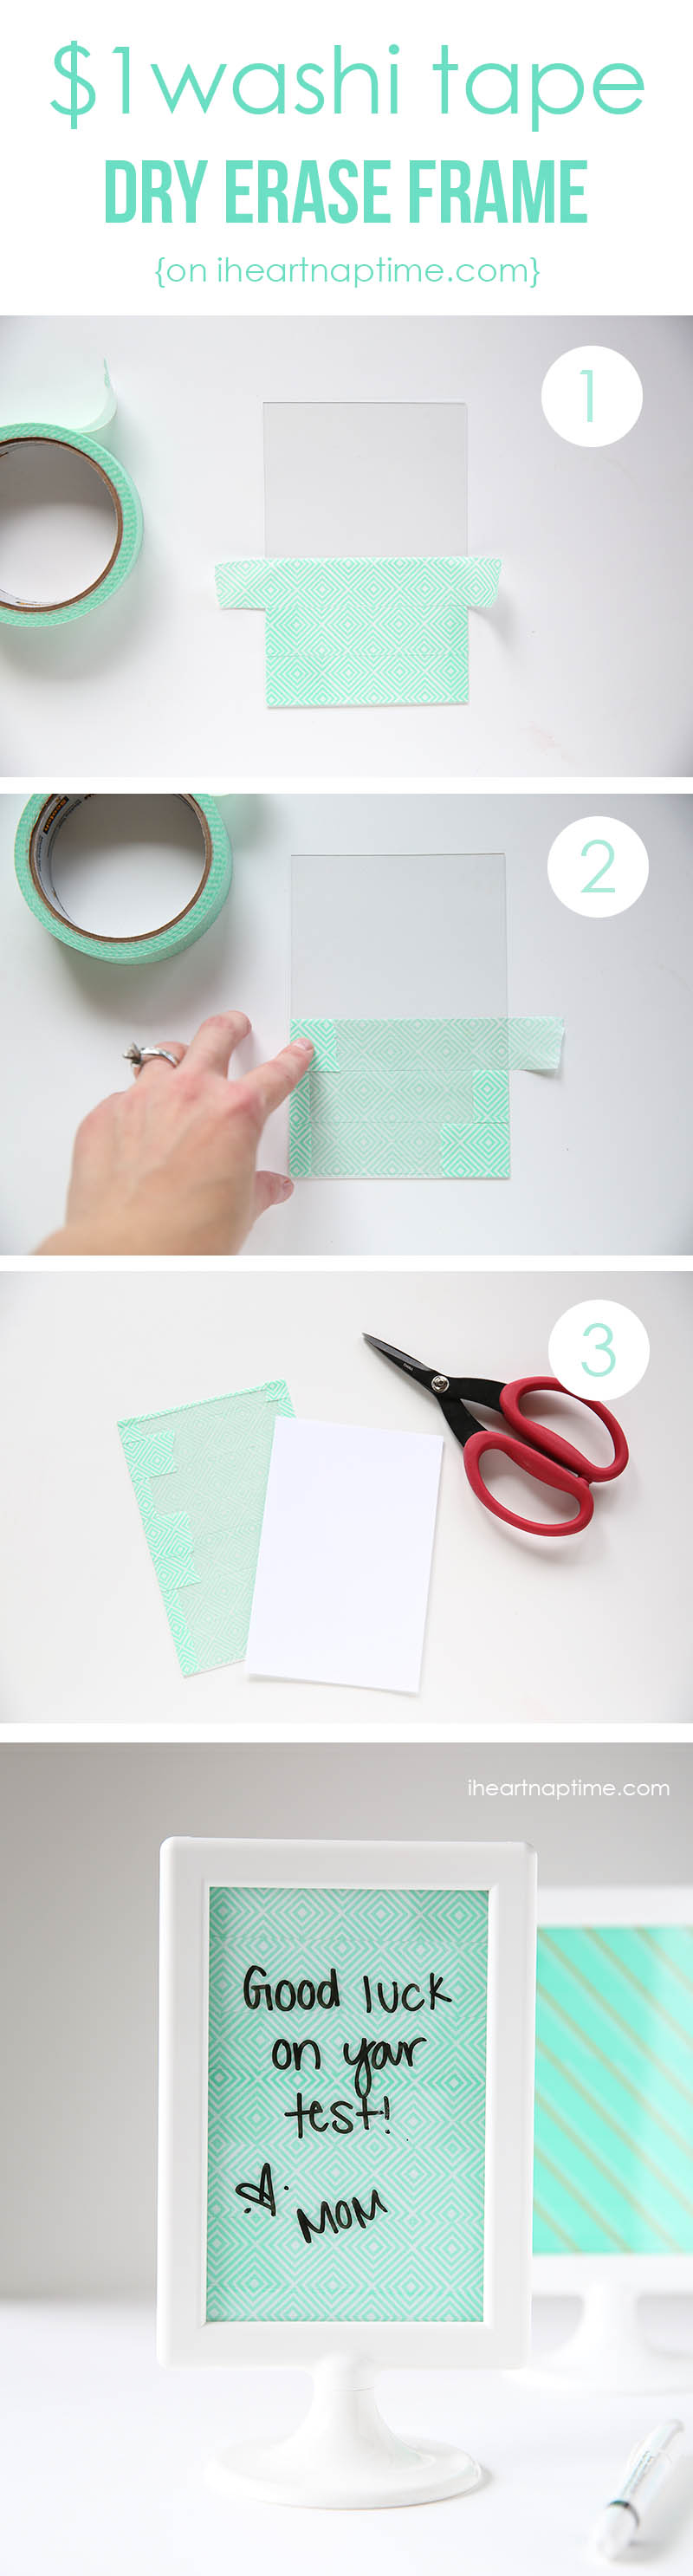 15 easy ways washi tape can transform your diy projects - Simple ways of keeping your home organized using magnetic picture frames ...